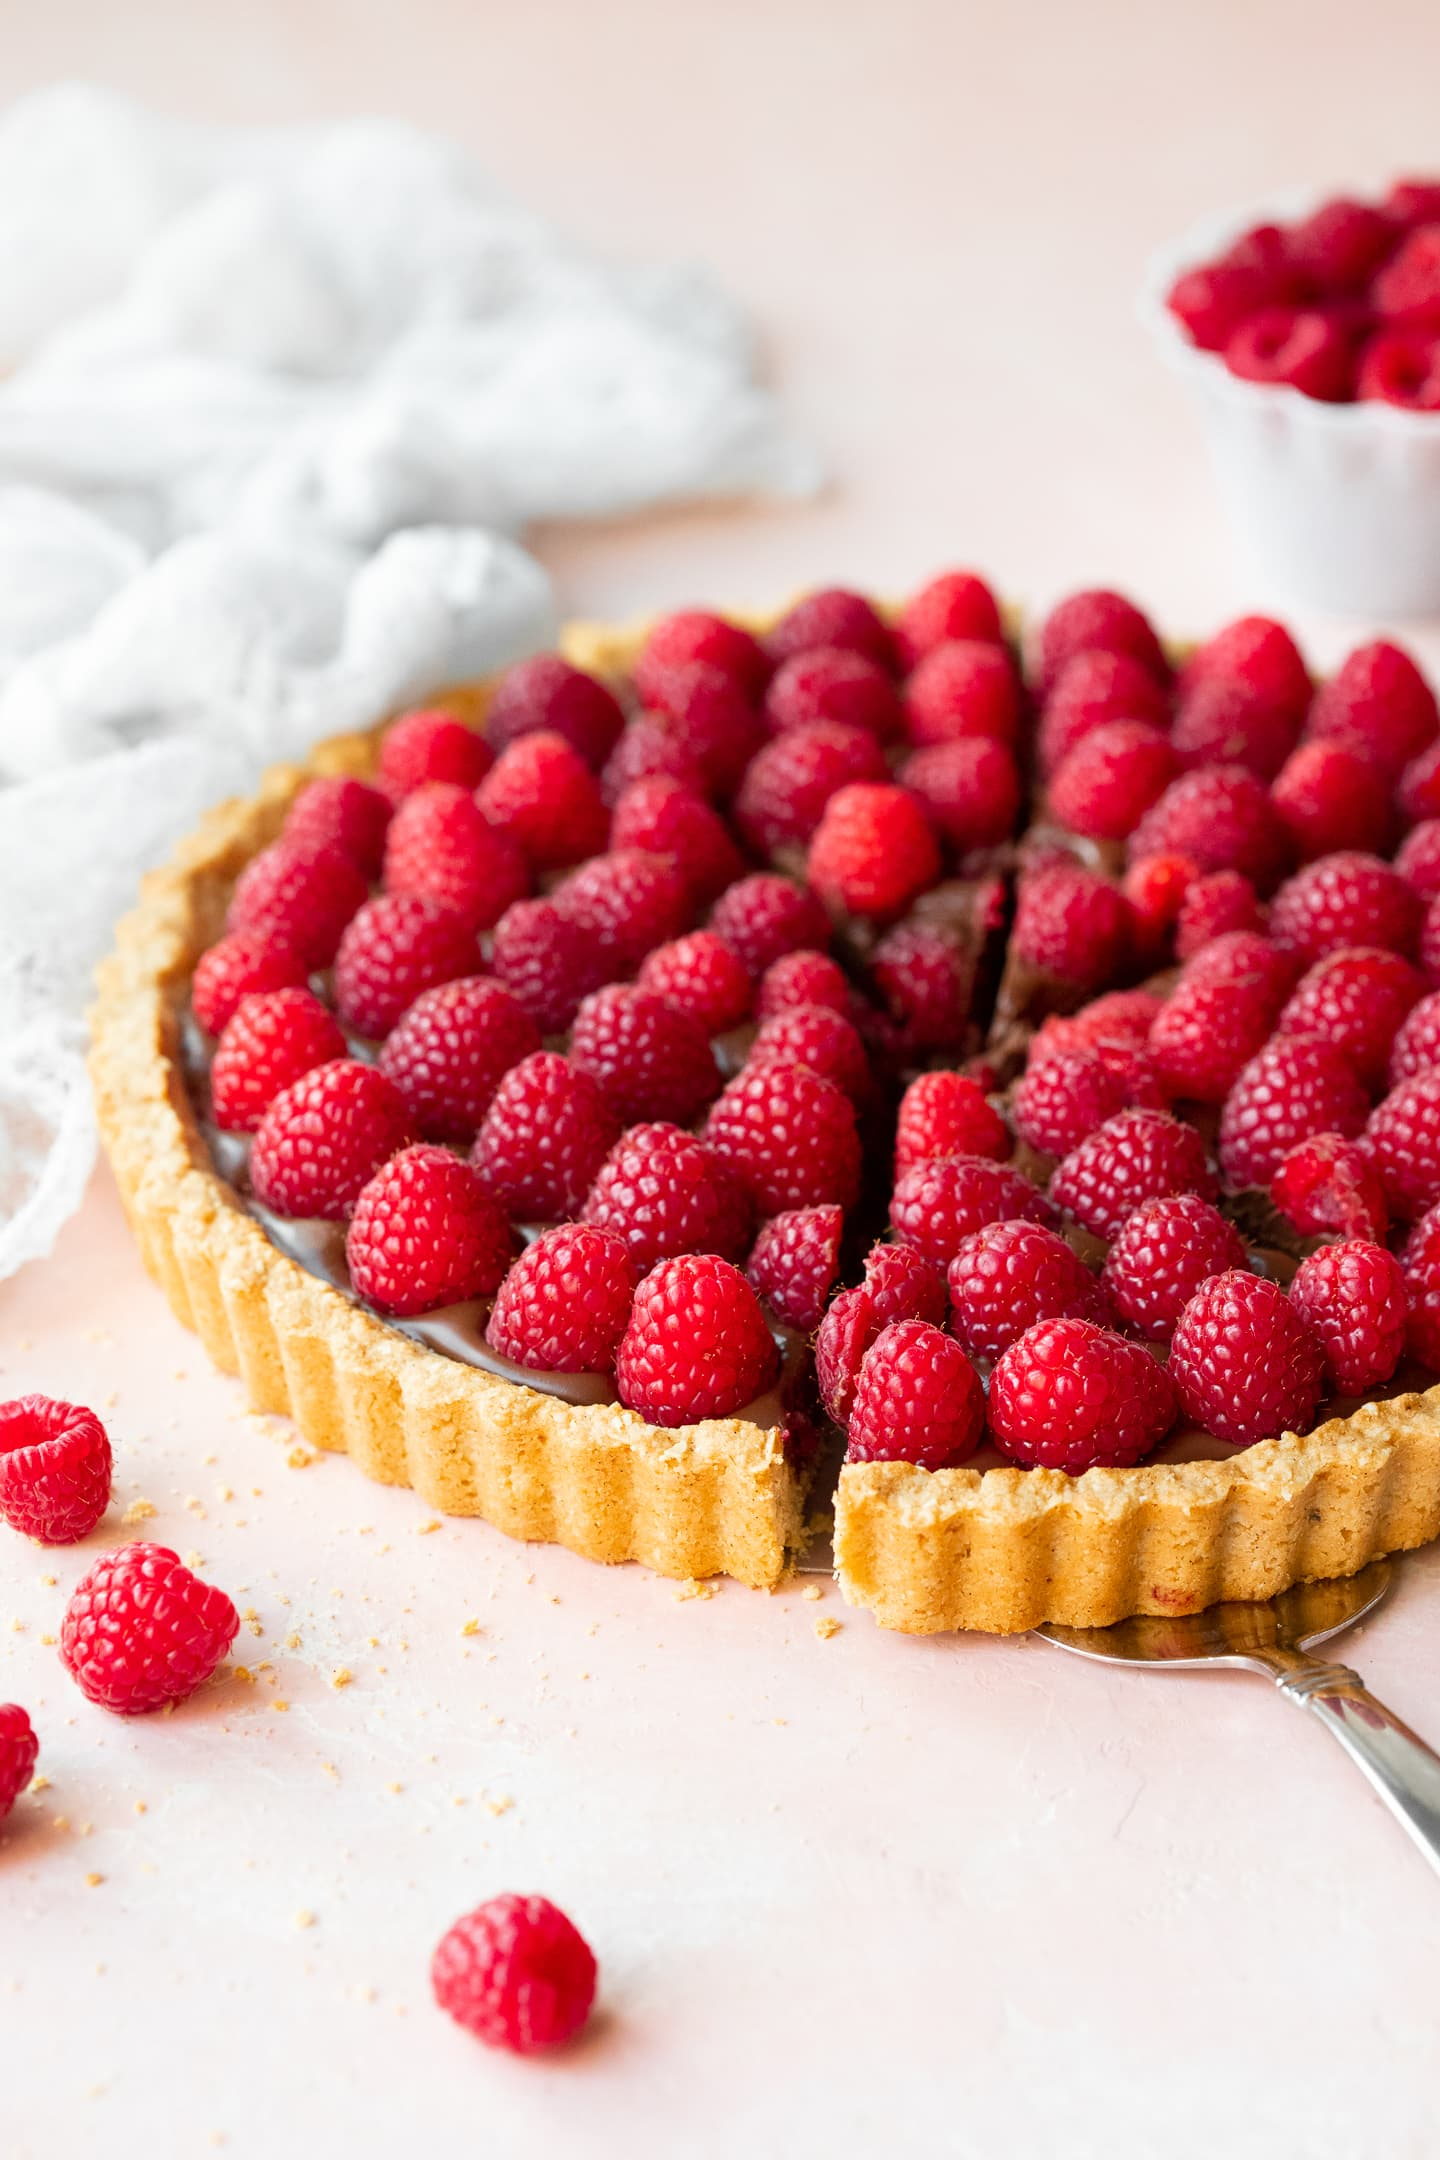 Front-angled view of a raspberry chocolate tart with a slice on a cake server, with scattered raspberries in the foreground and raspberries in a bowl in the background.